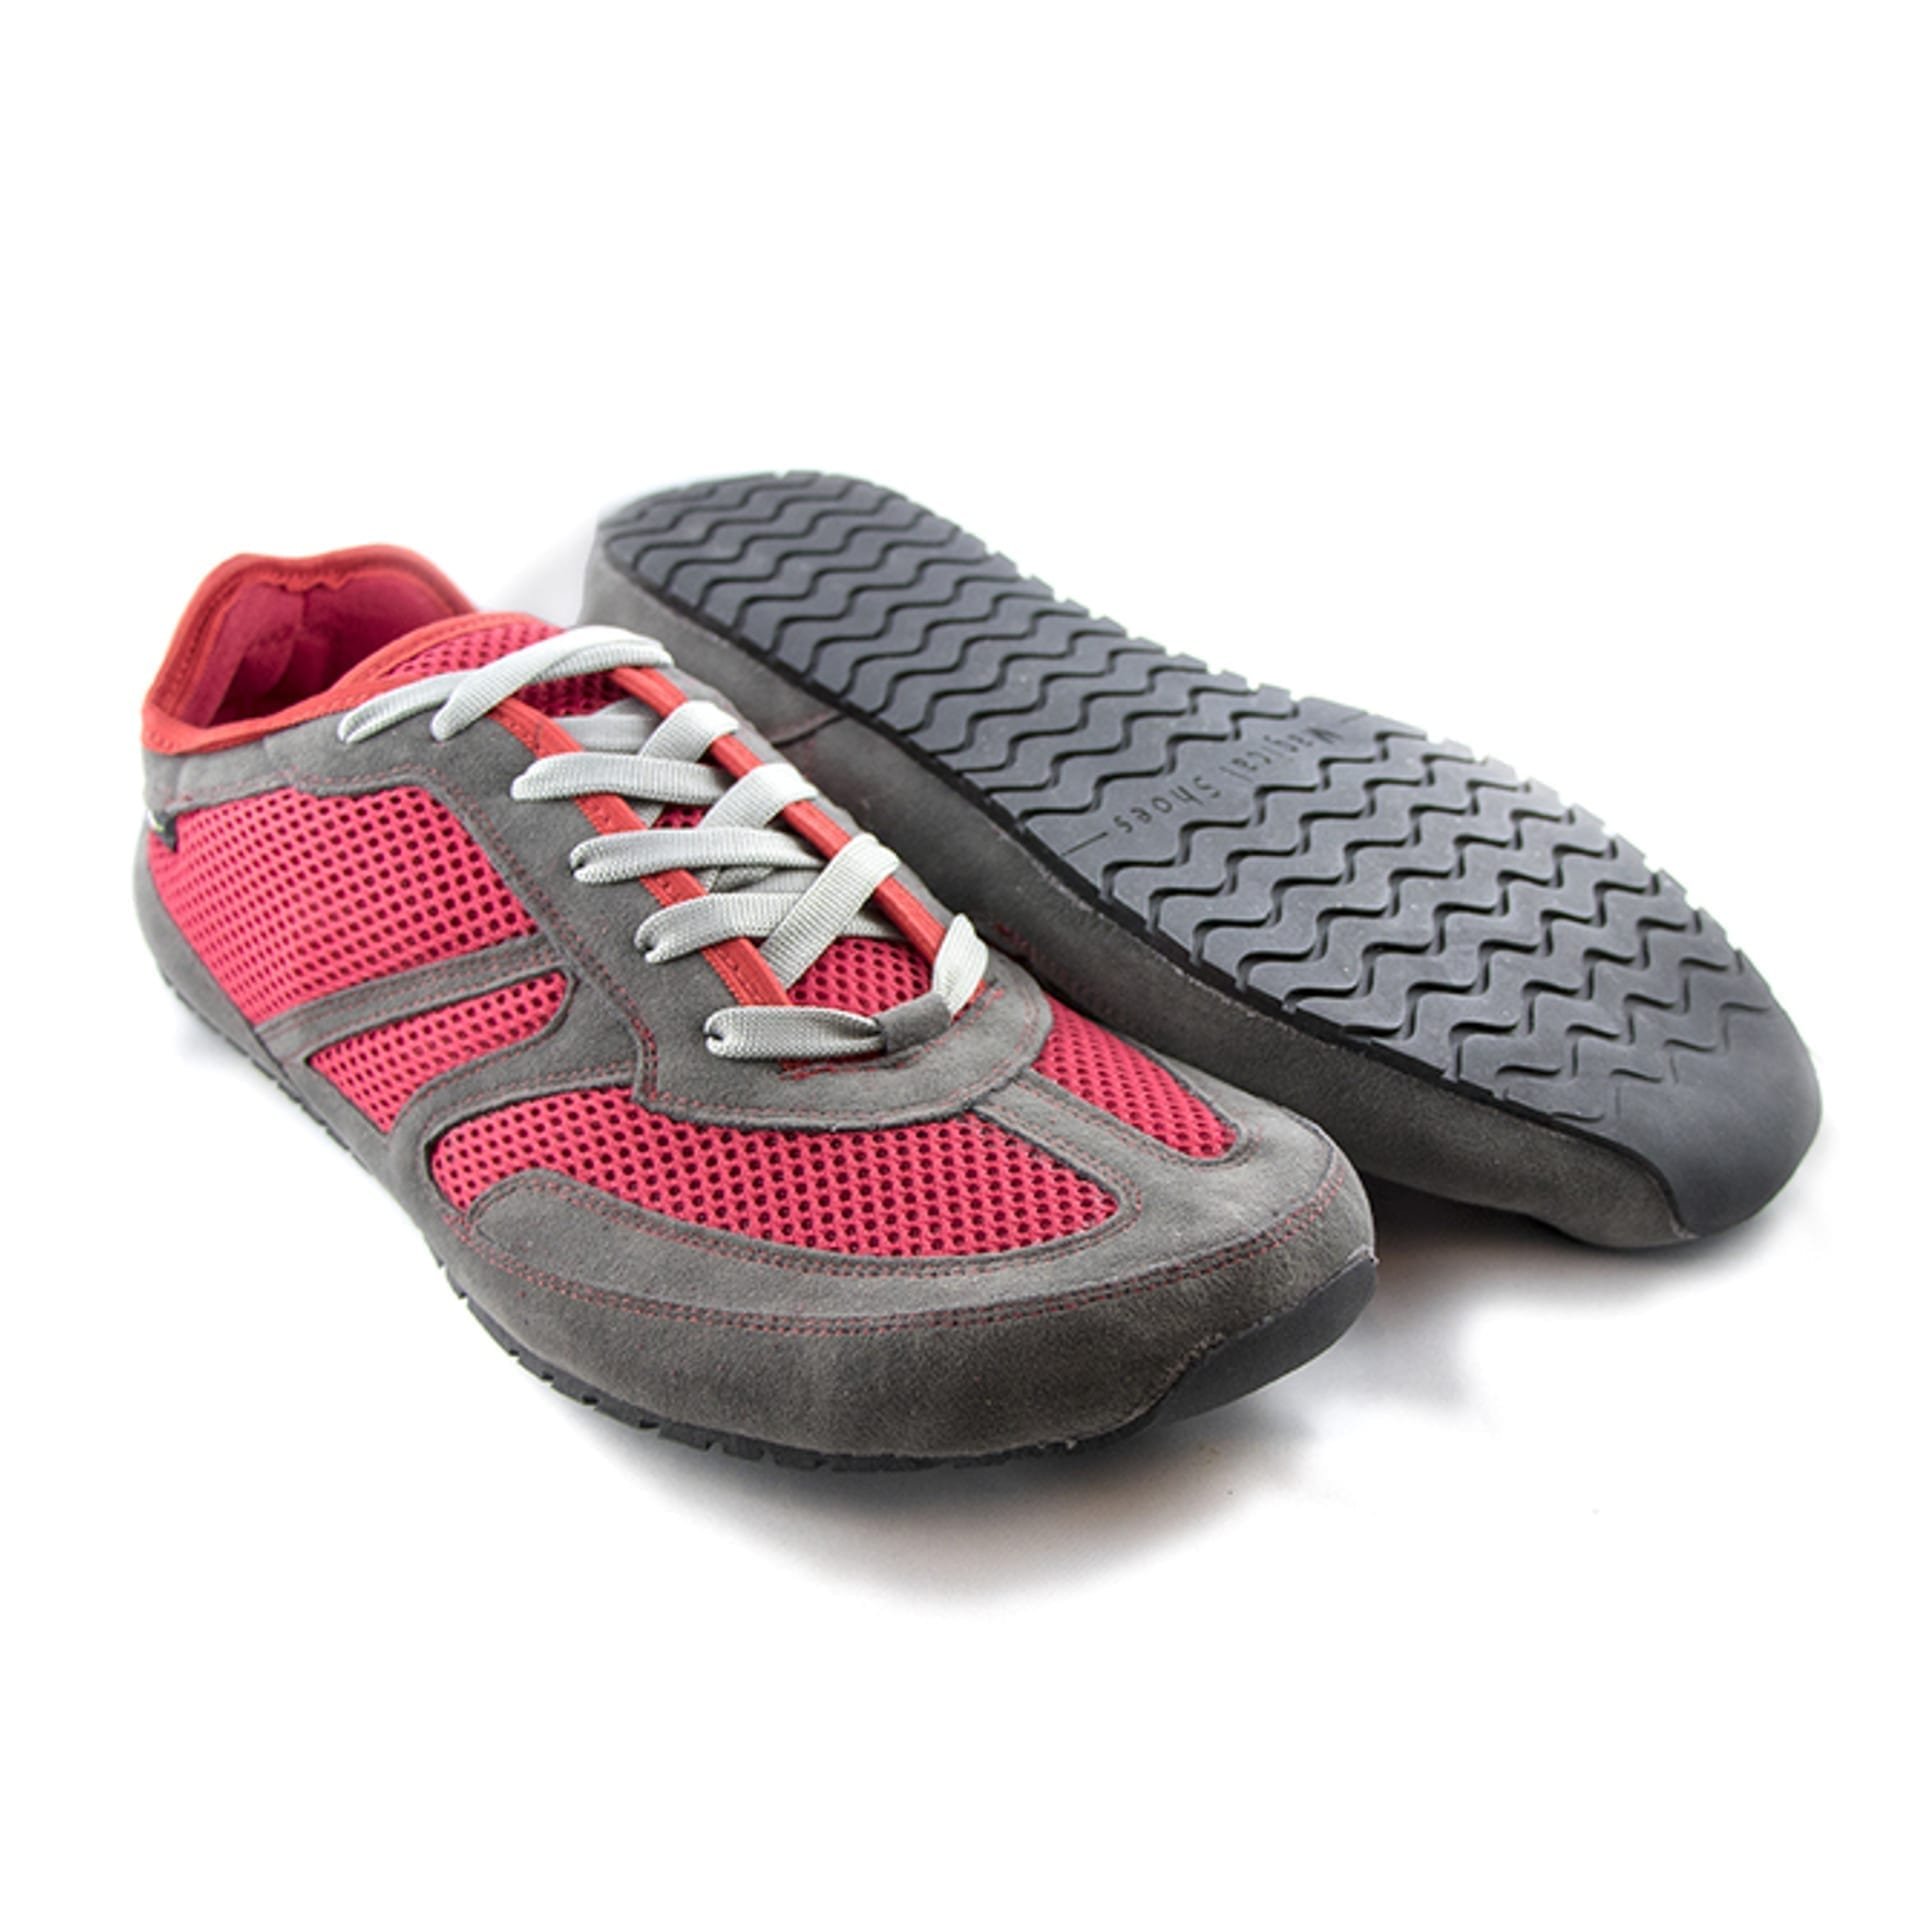 Best Vegan Walking Shoes